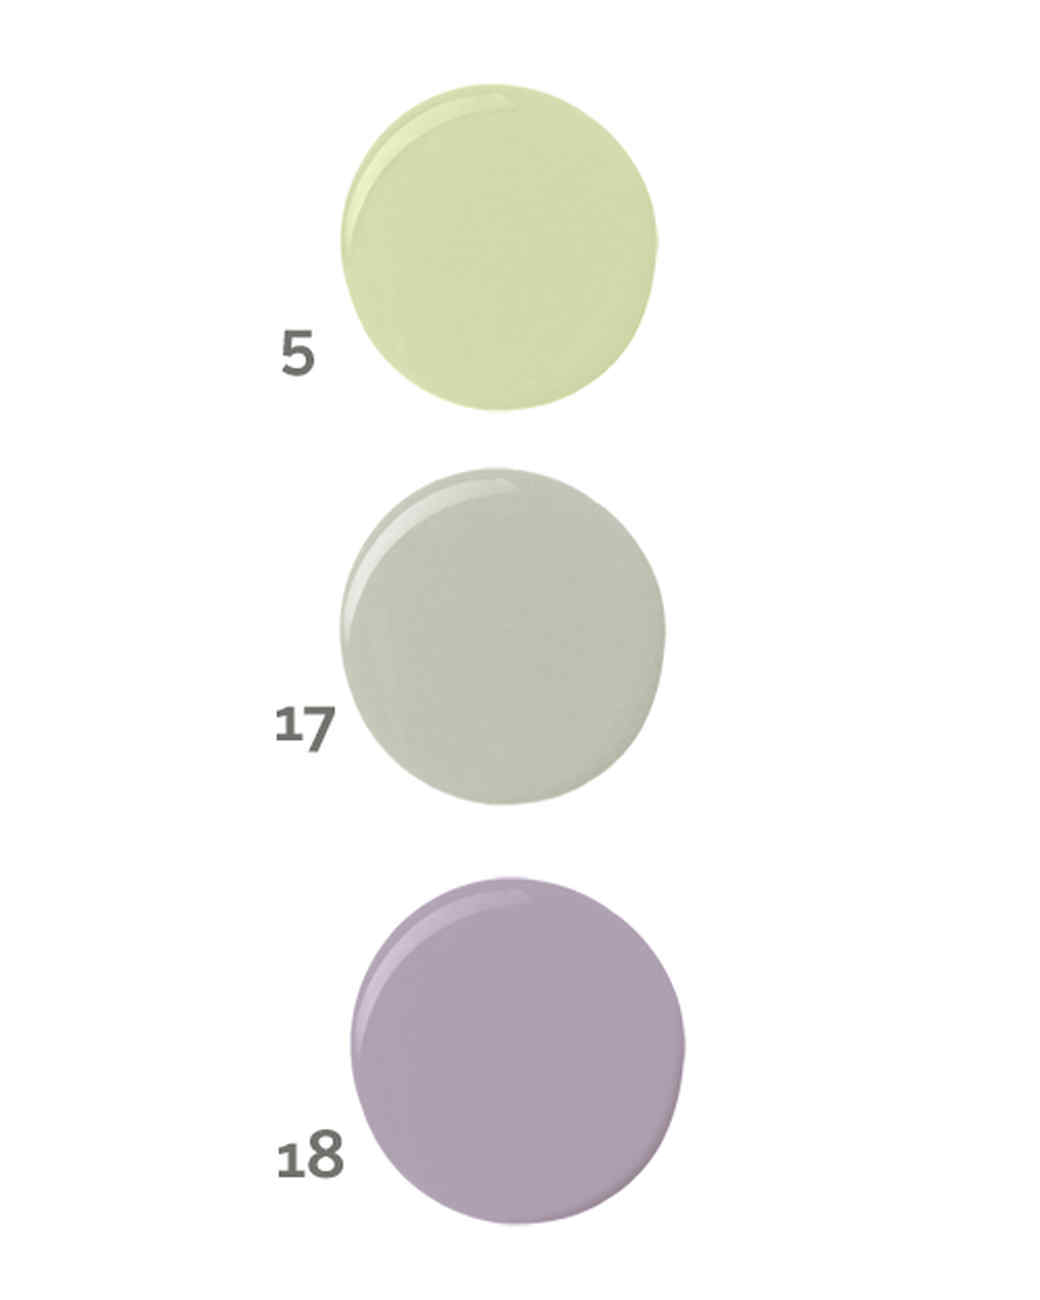 mld104784_0510_paint_swatches5.jpg